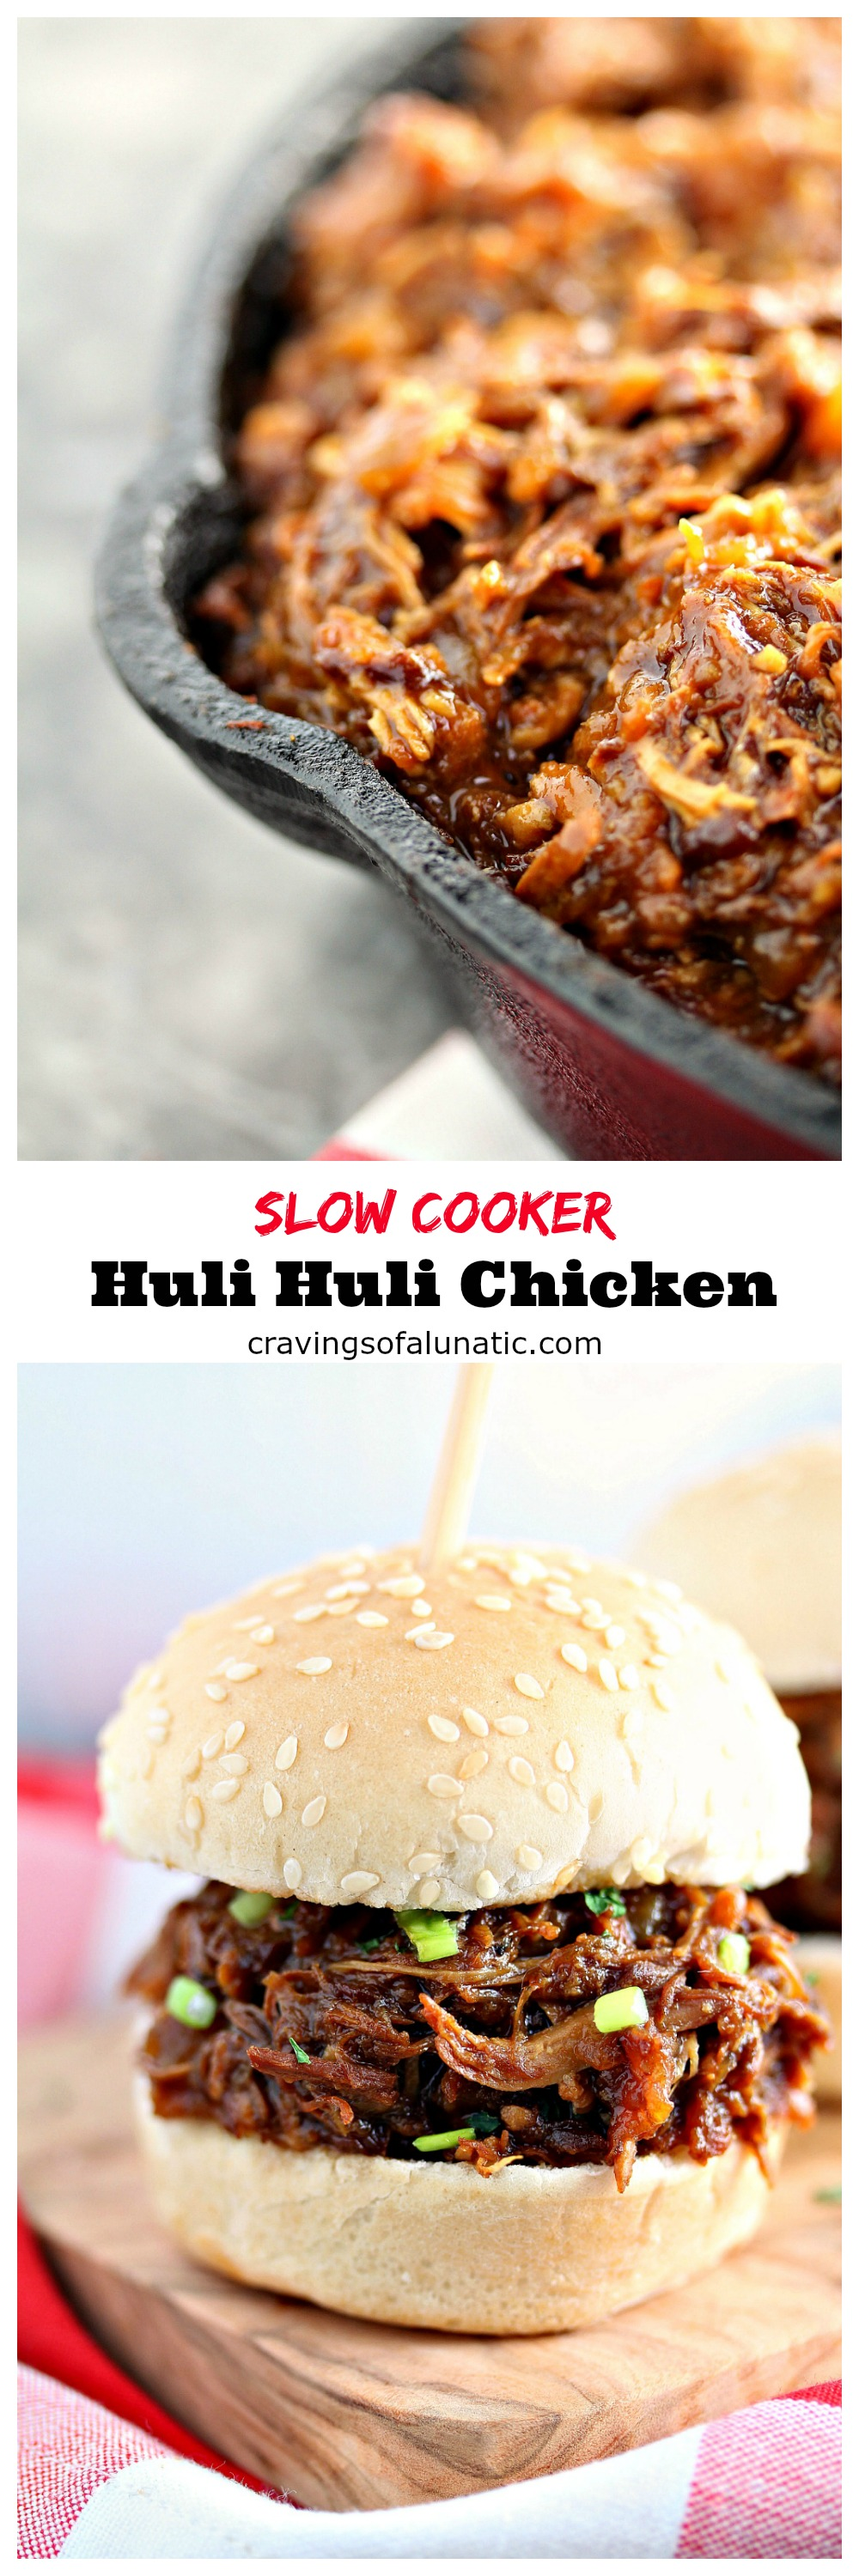 This Slow Cooker Huli Huli Chicken is the ultimate set it and forget it recipe. The flavour is so intense that it's hard to believe how easy this is to make. This will become your family's favourite chicken recipe!